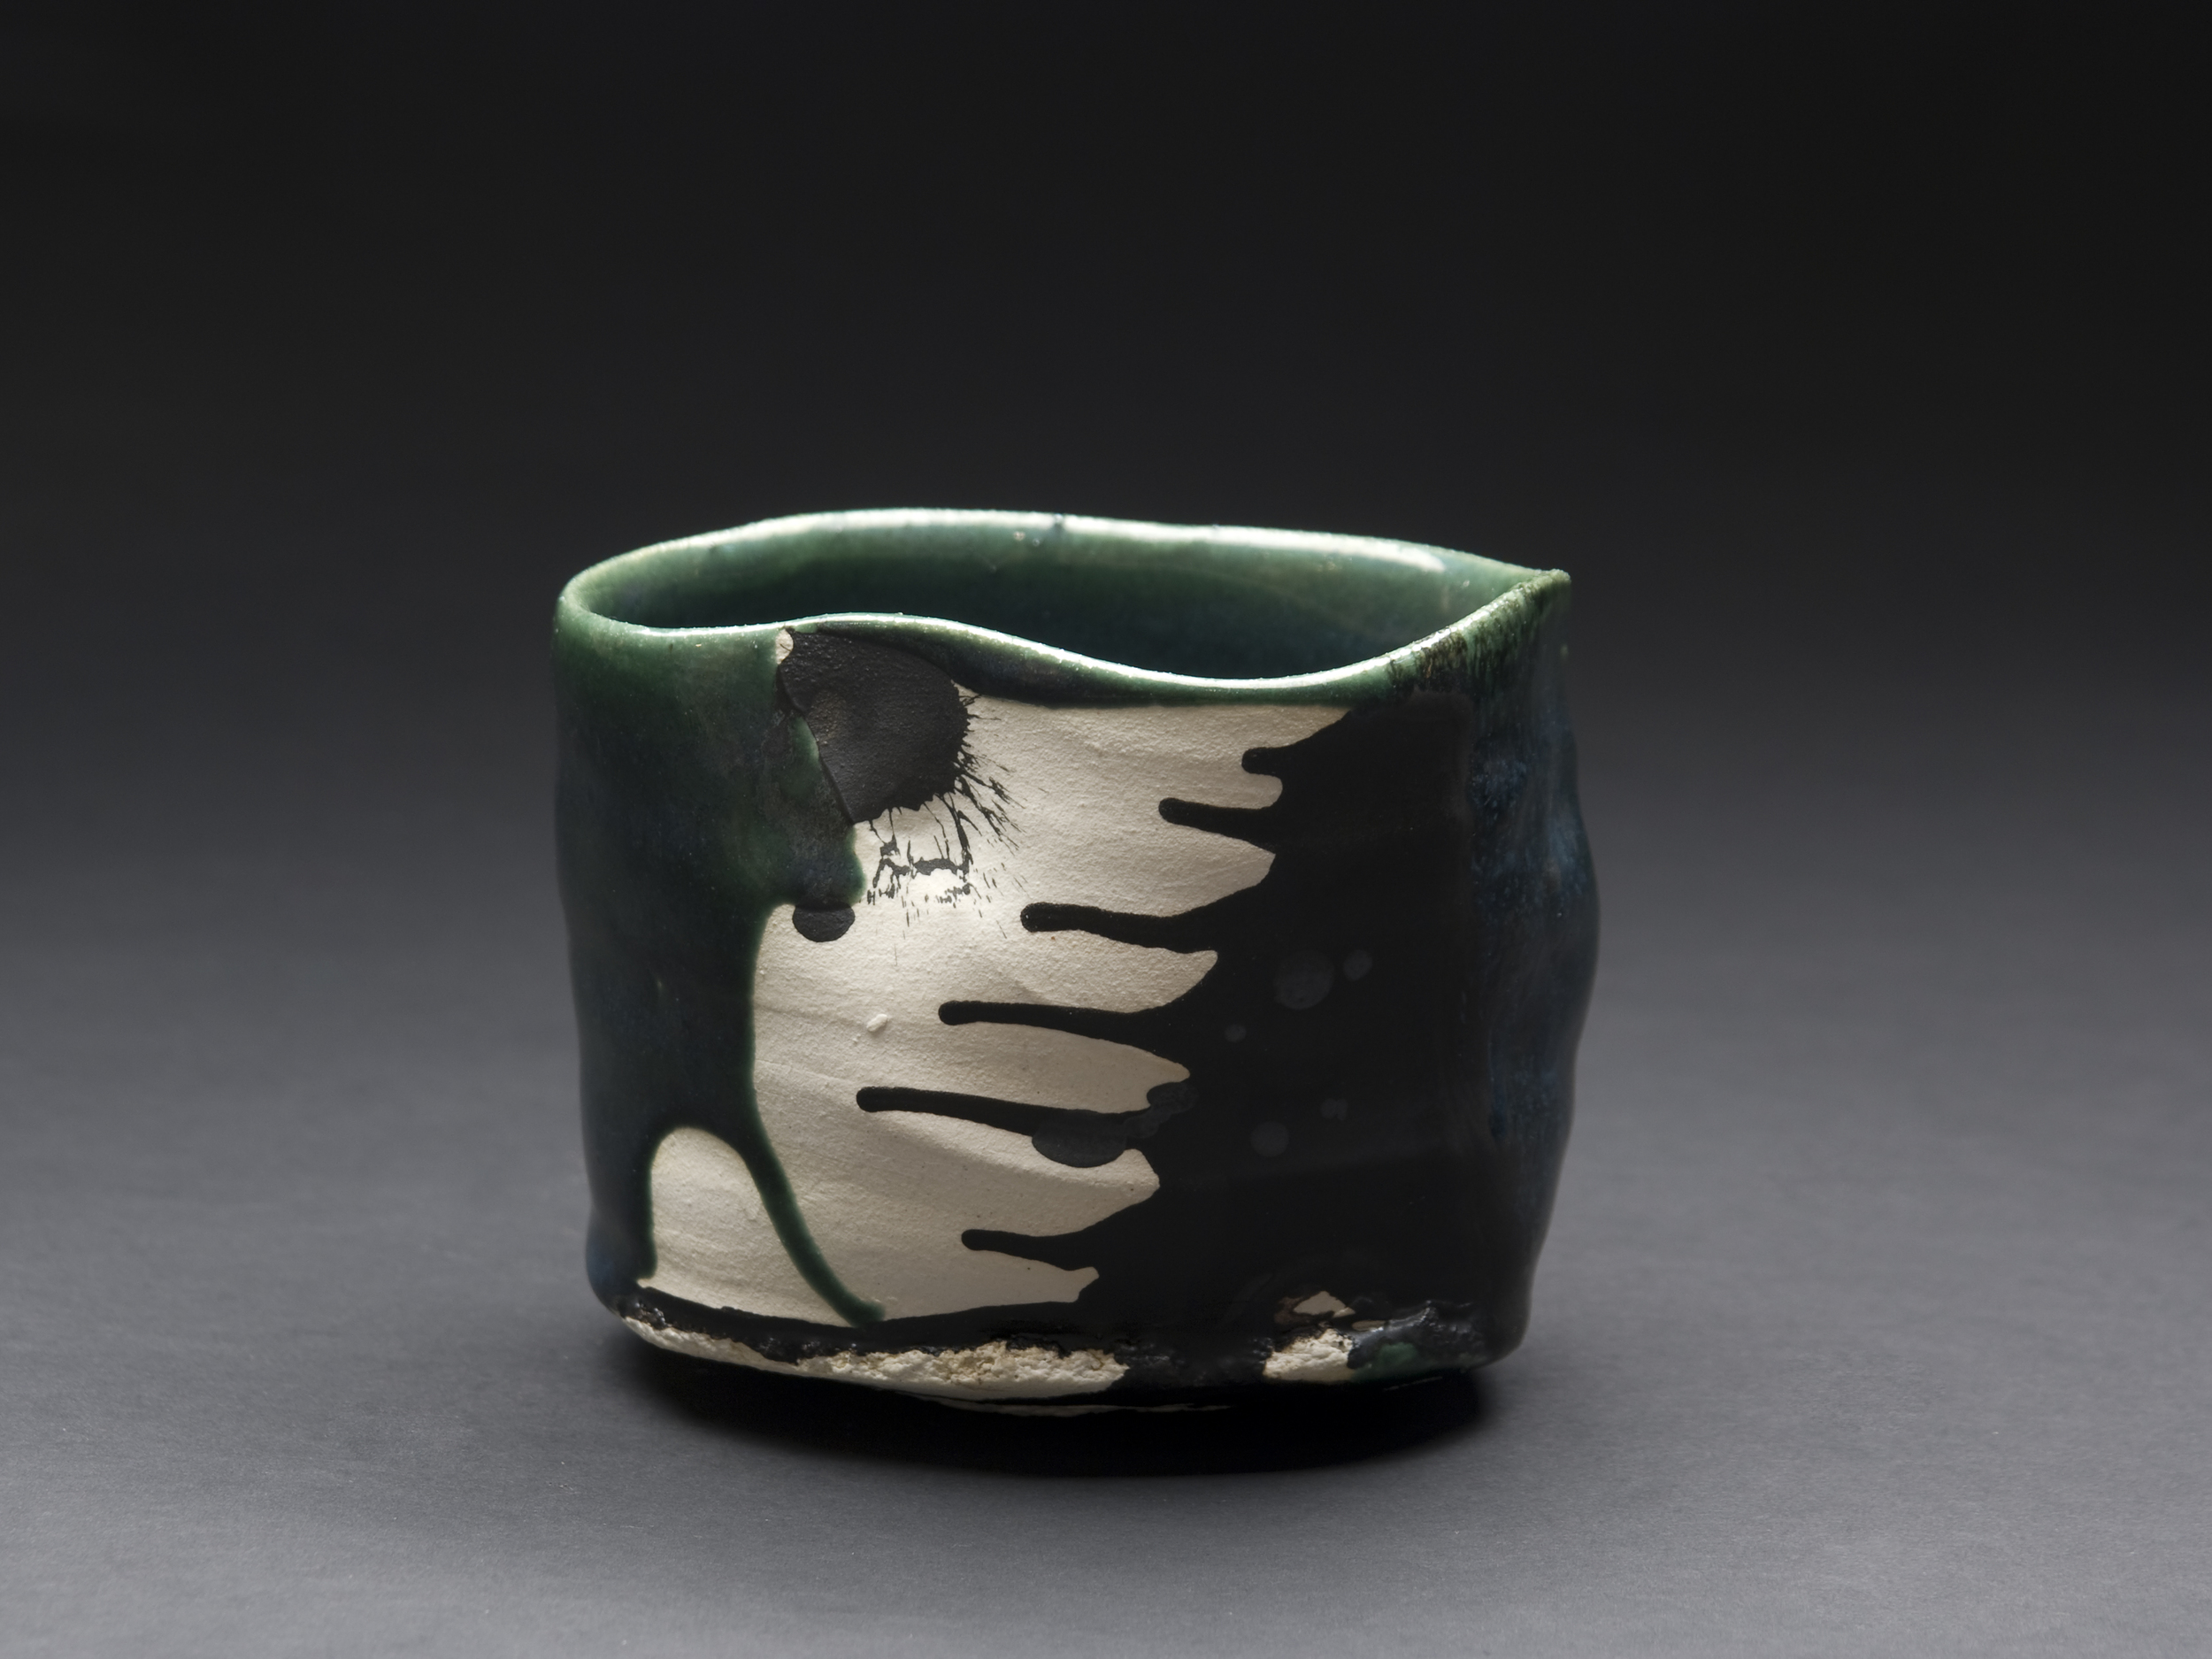 Robert Fornell Oribe Chawan , 2012 Clay, Oxidation fired to cone 7 8 x 11 x 11 inches / 20.3 x 27.9 x 27.9 cm / RFo 39